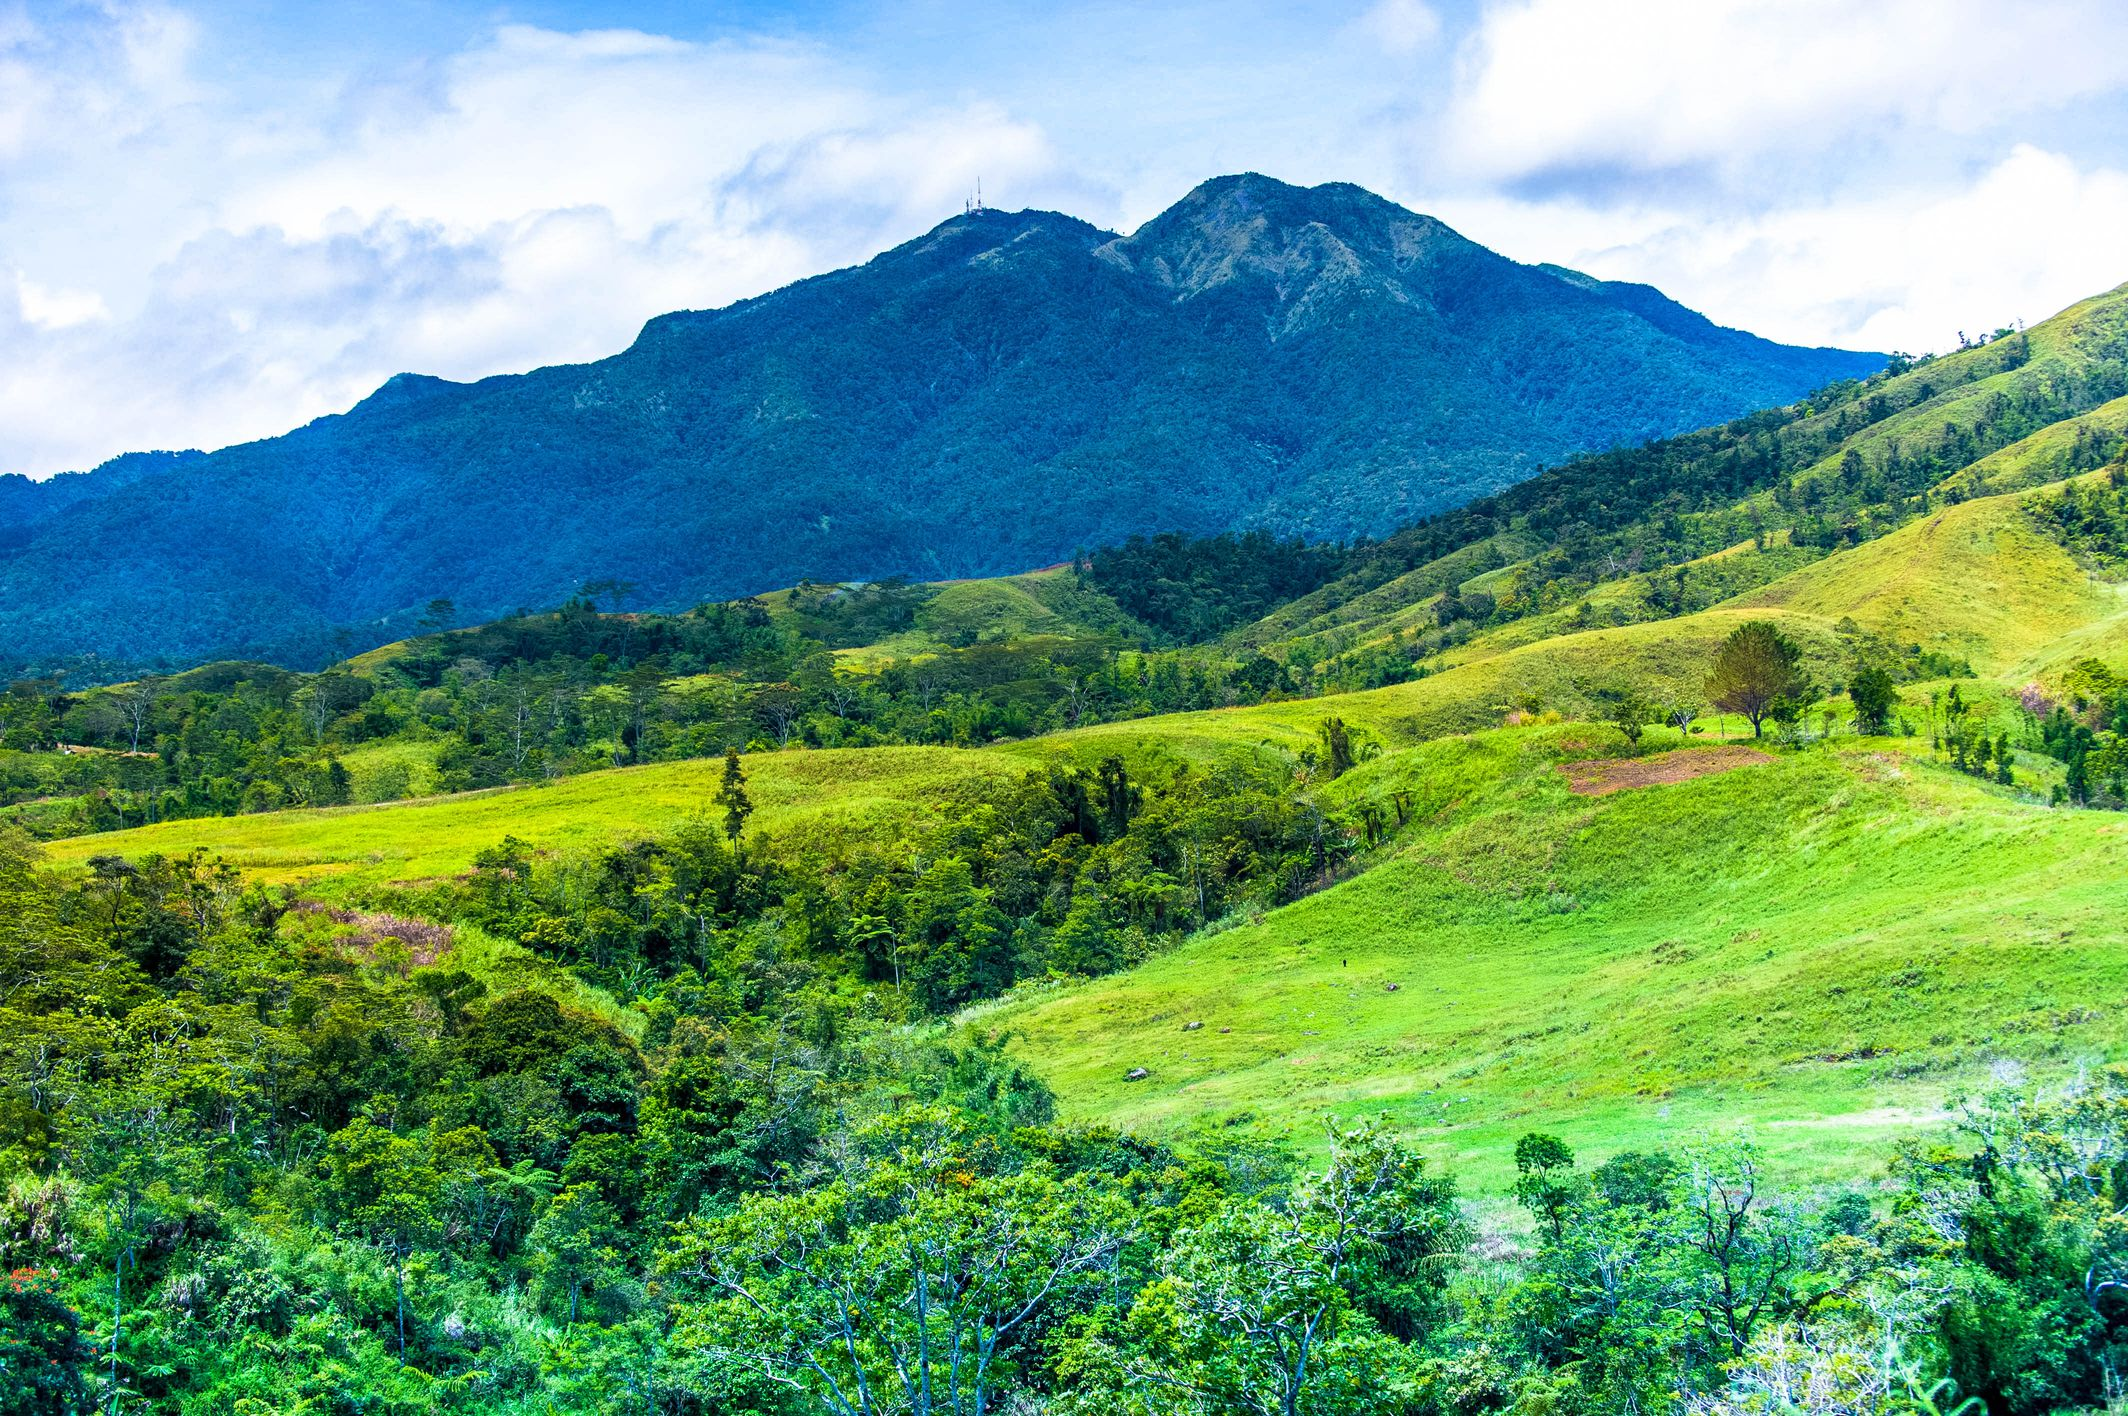 Dark mass of Mount Kitanglad seen from the green highlands of Bukidnon